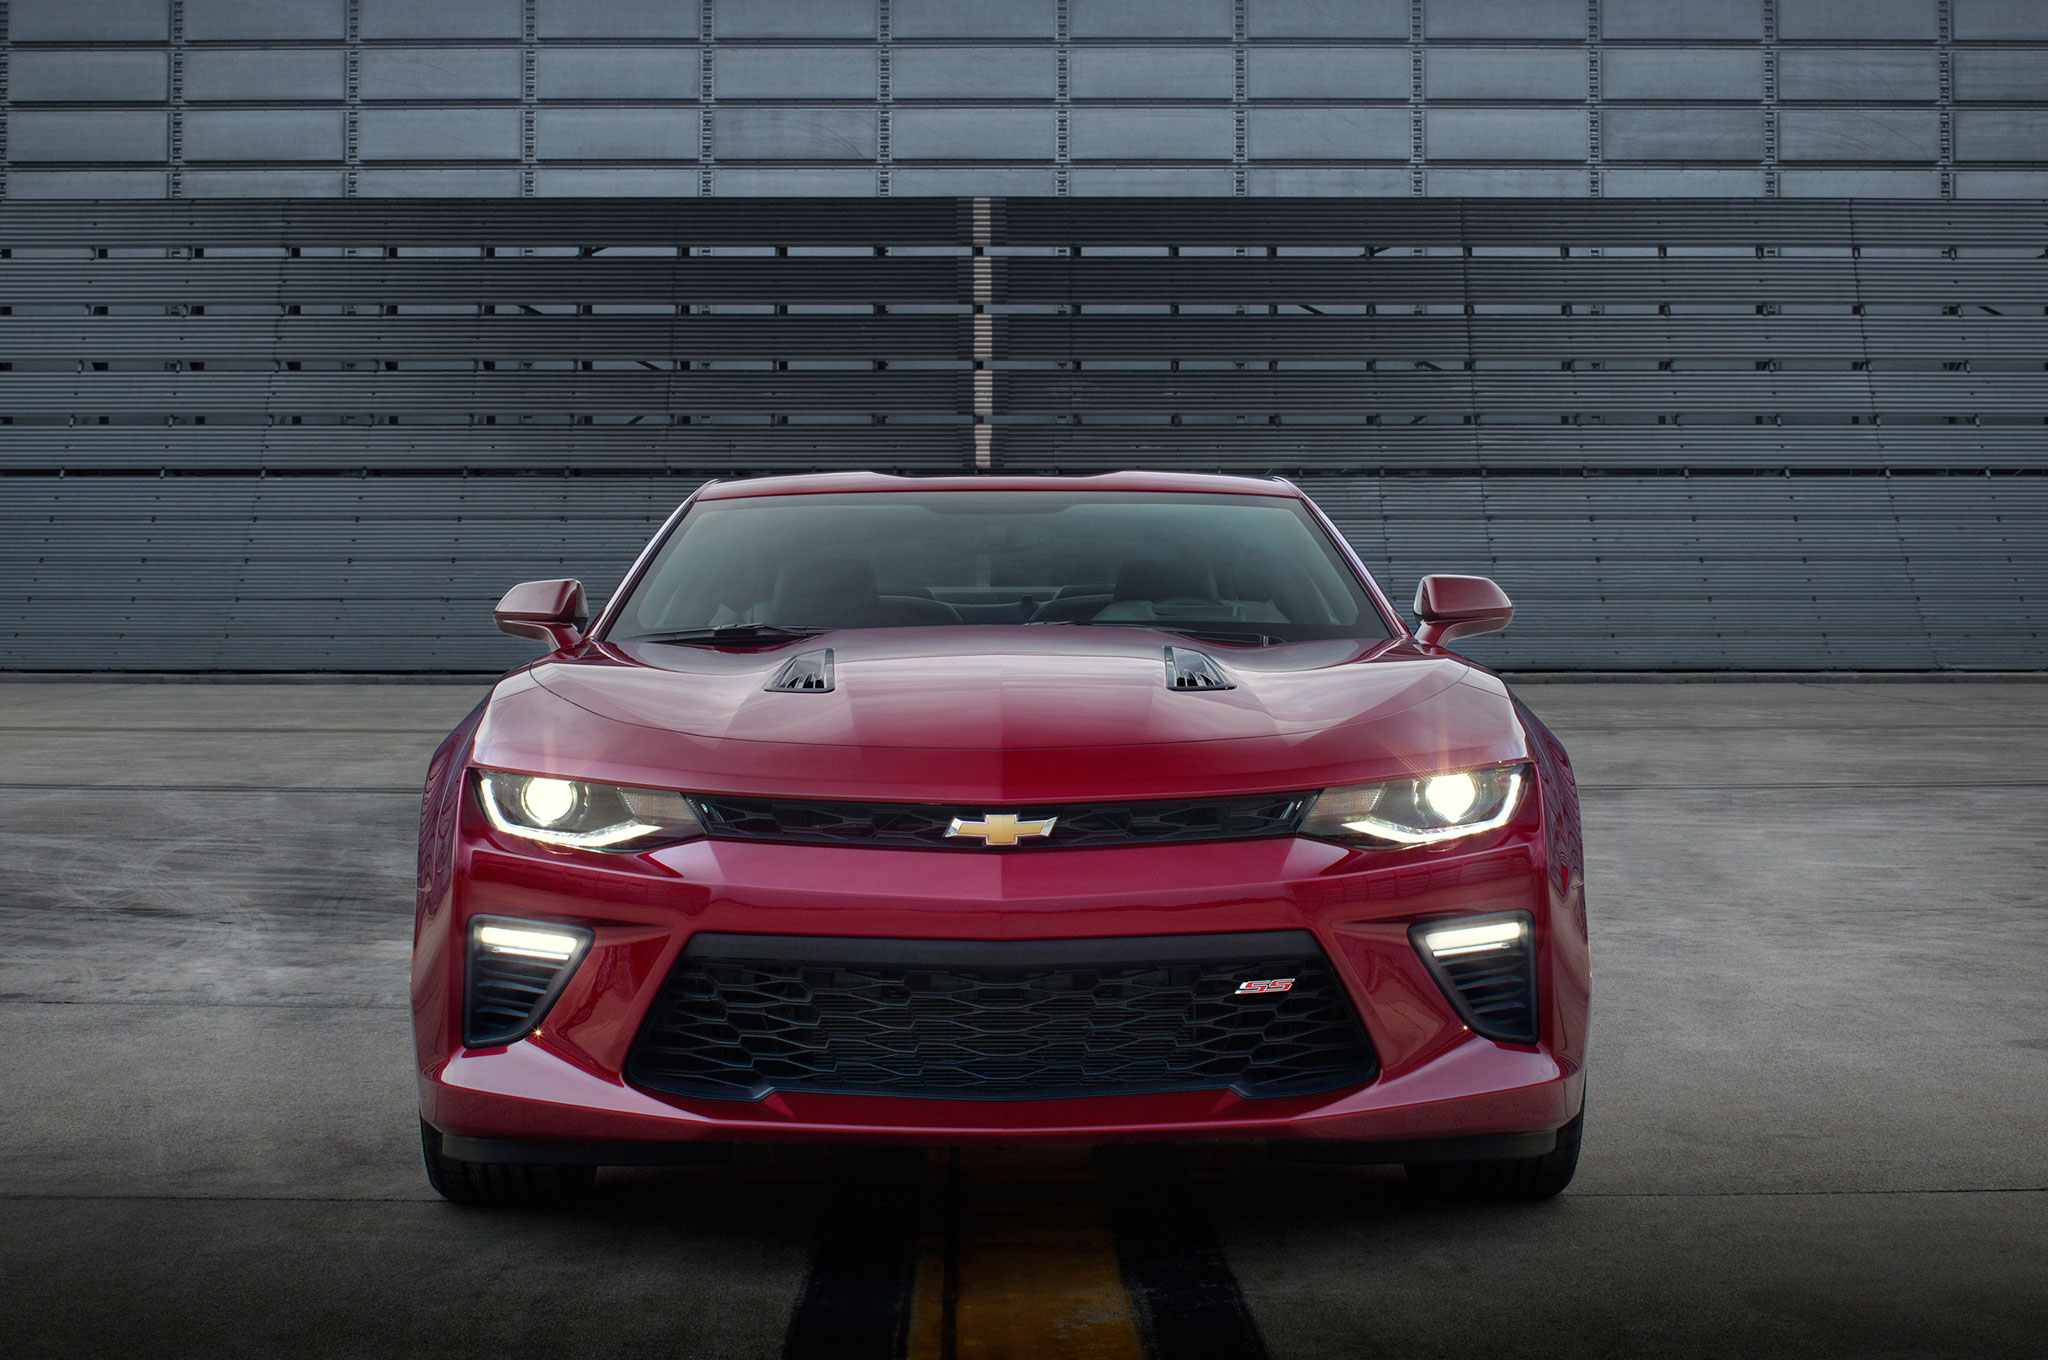 2016 Chevrolet Camaro SS front end chevrolet camaro named 2016 motor trend car of the year  at gsmportal.co